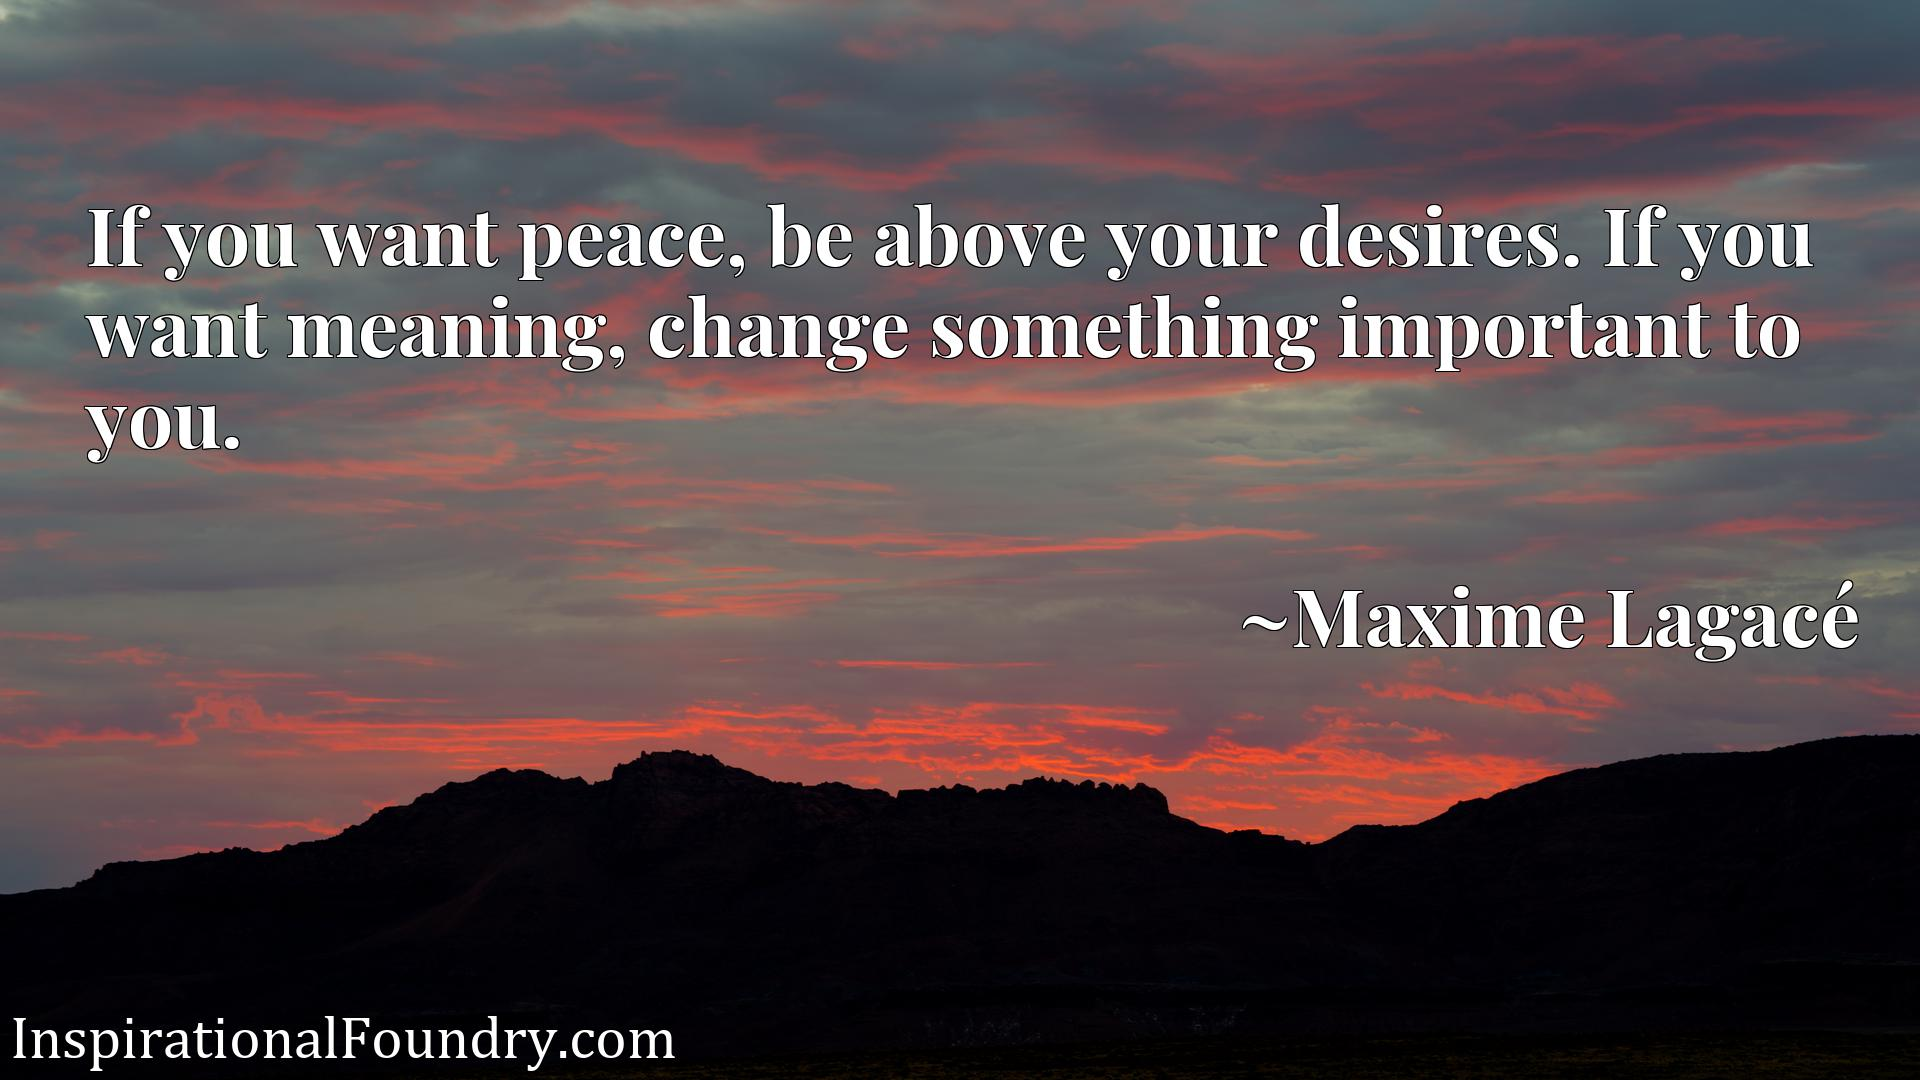 If you want peace, be above your desires. If you want meaning, change something important to you.